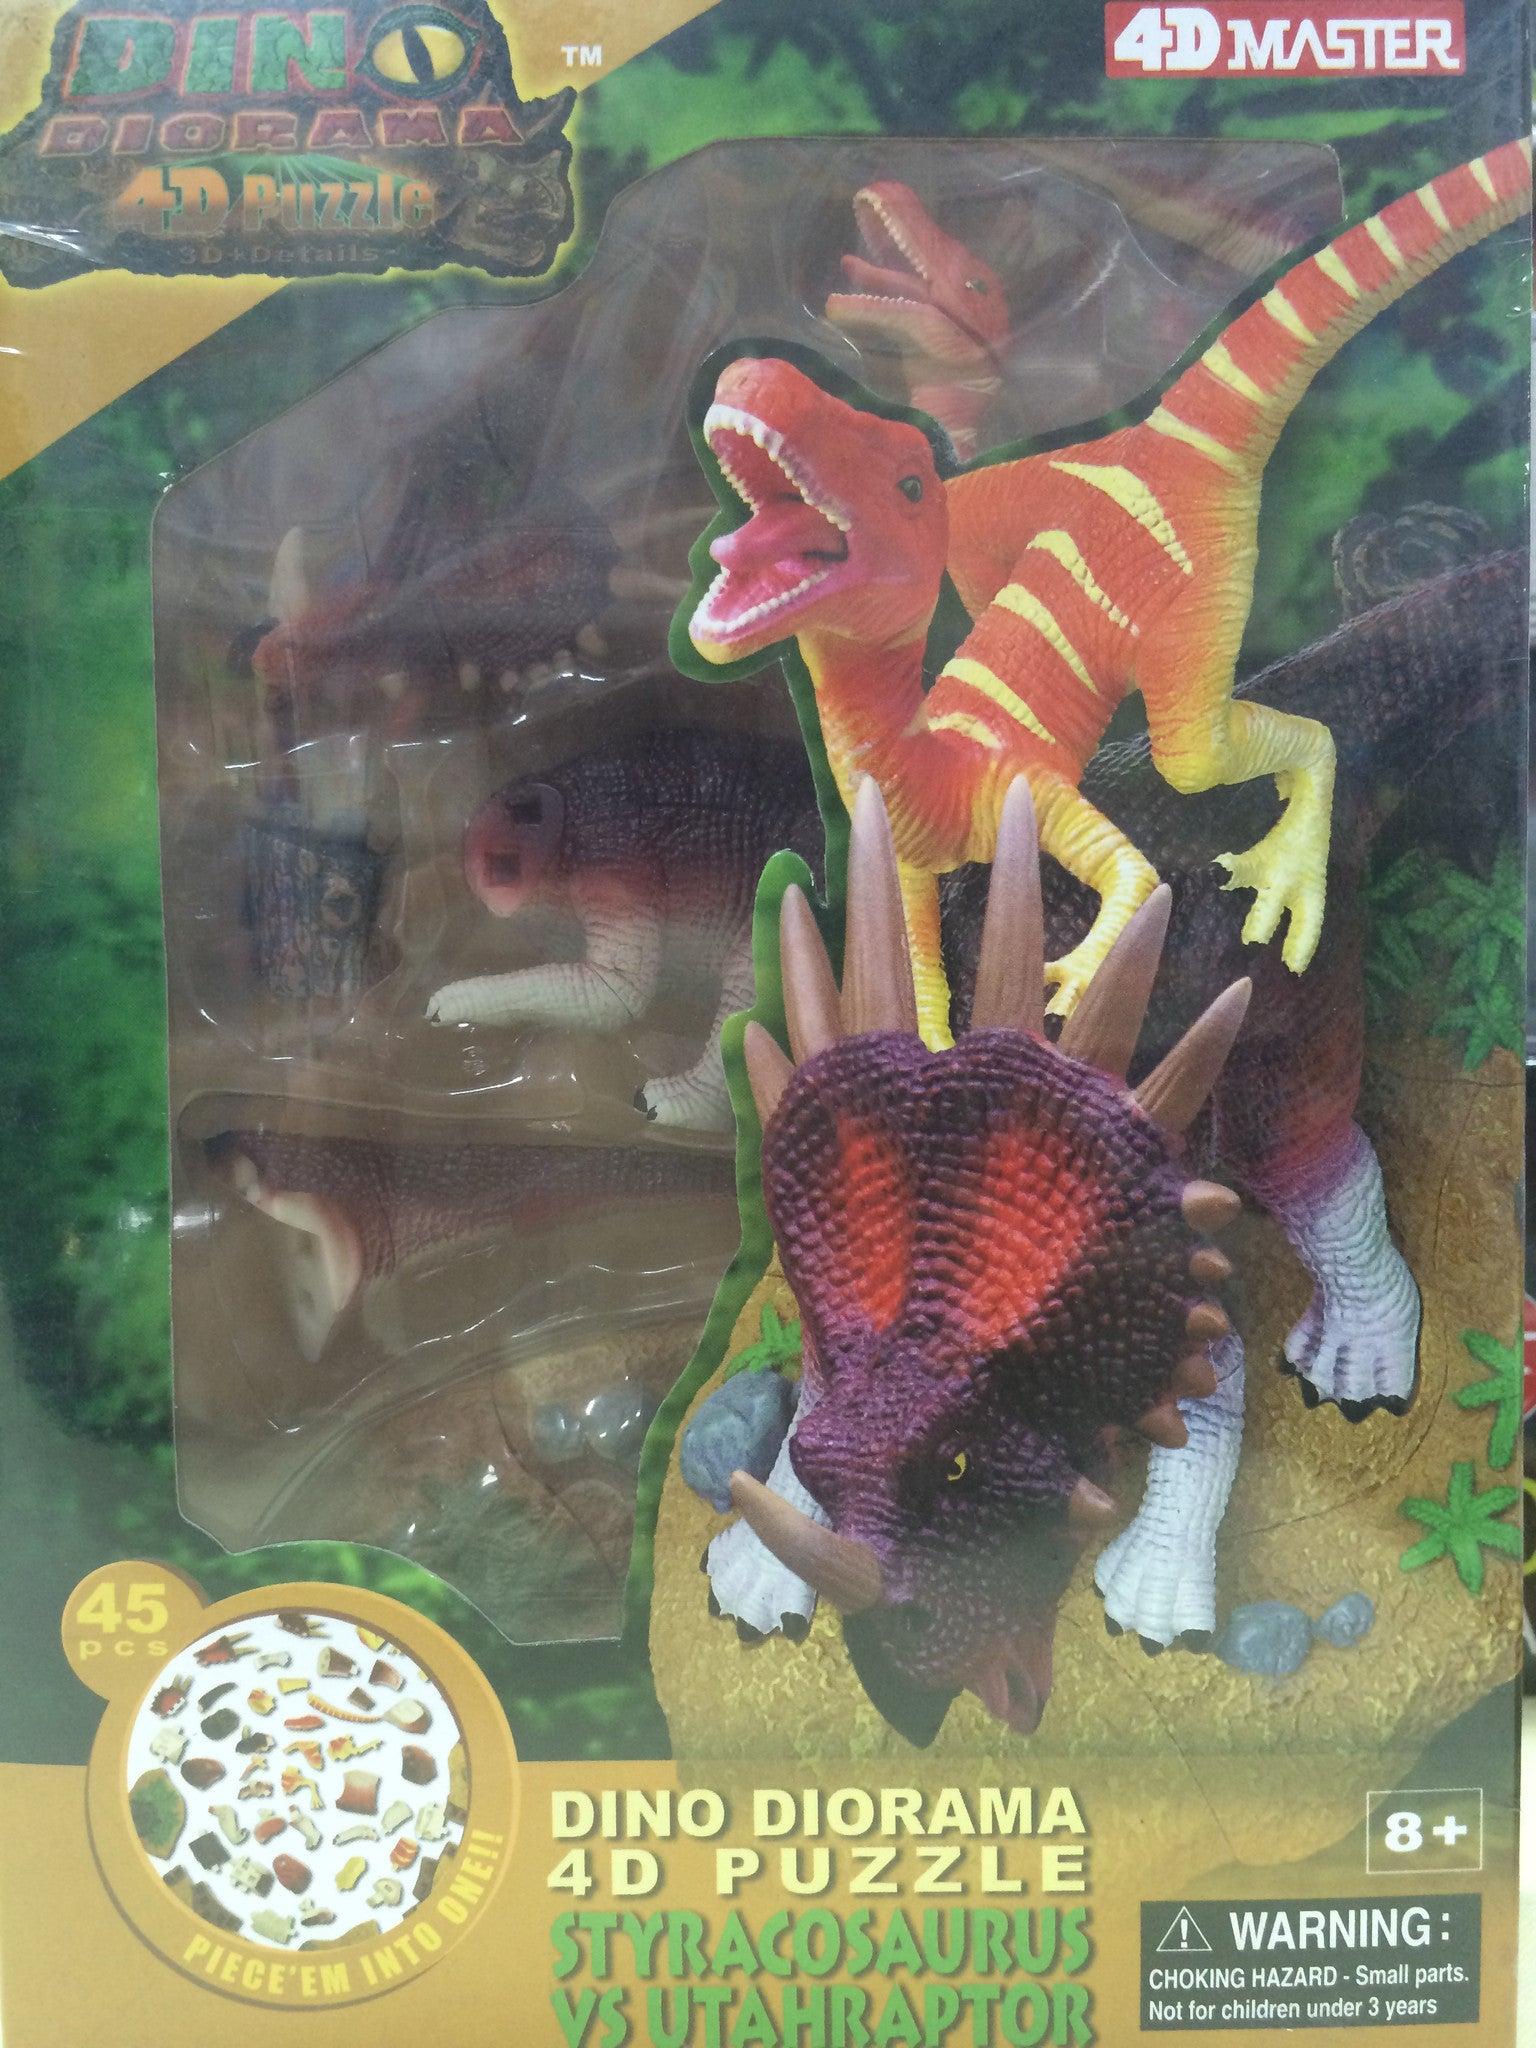 Science kits righttolearn 4d famemaster diy dino diorama styracosaurus vs utahraptor righttolearn solutioingenieria Gallery